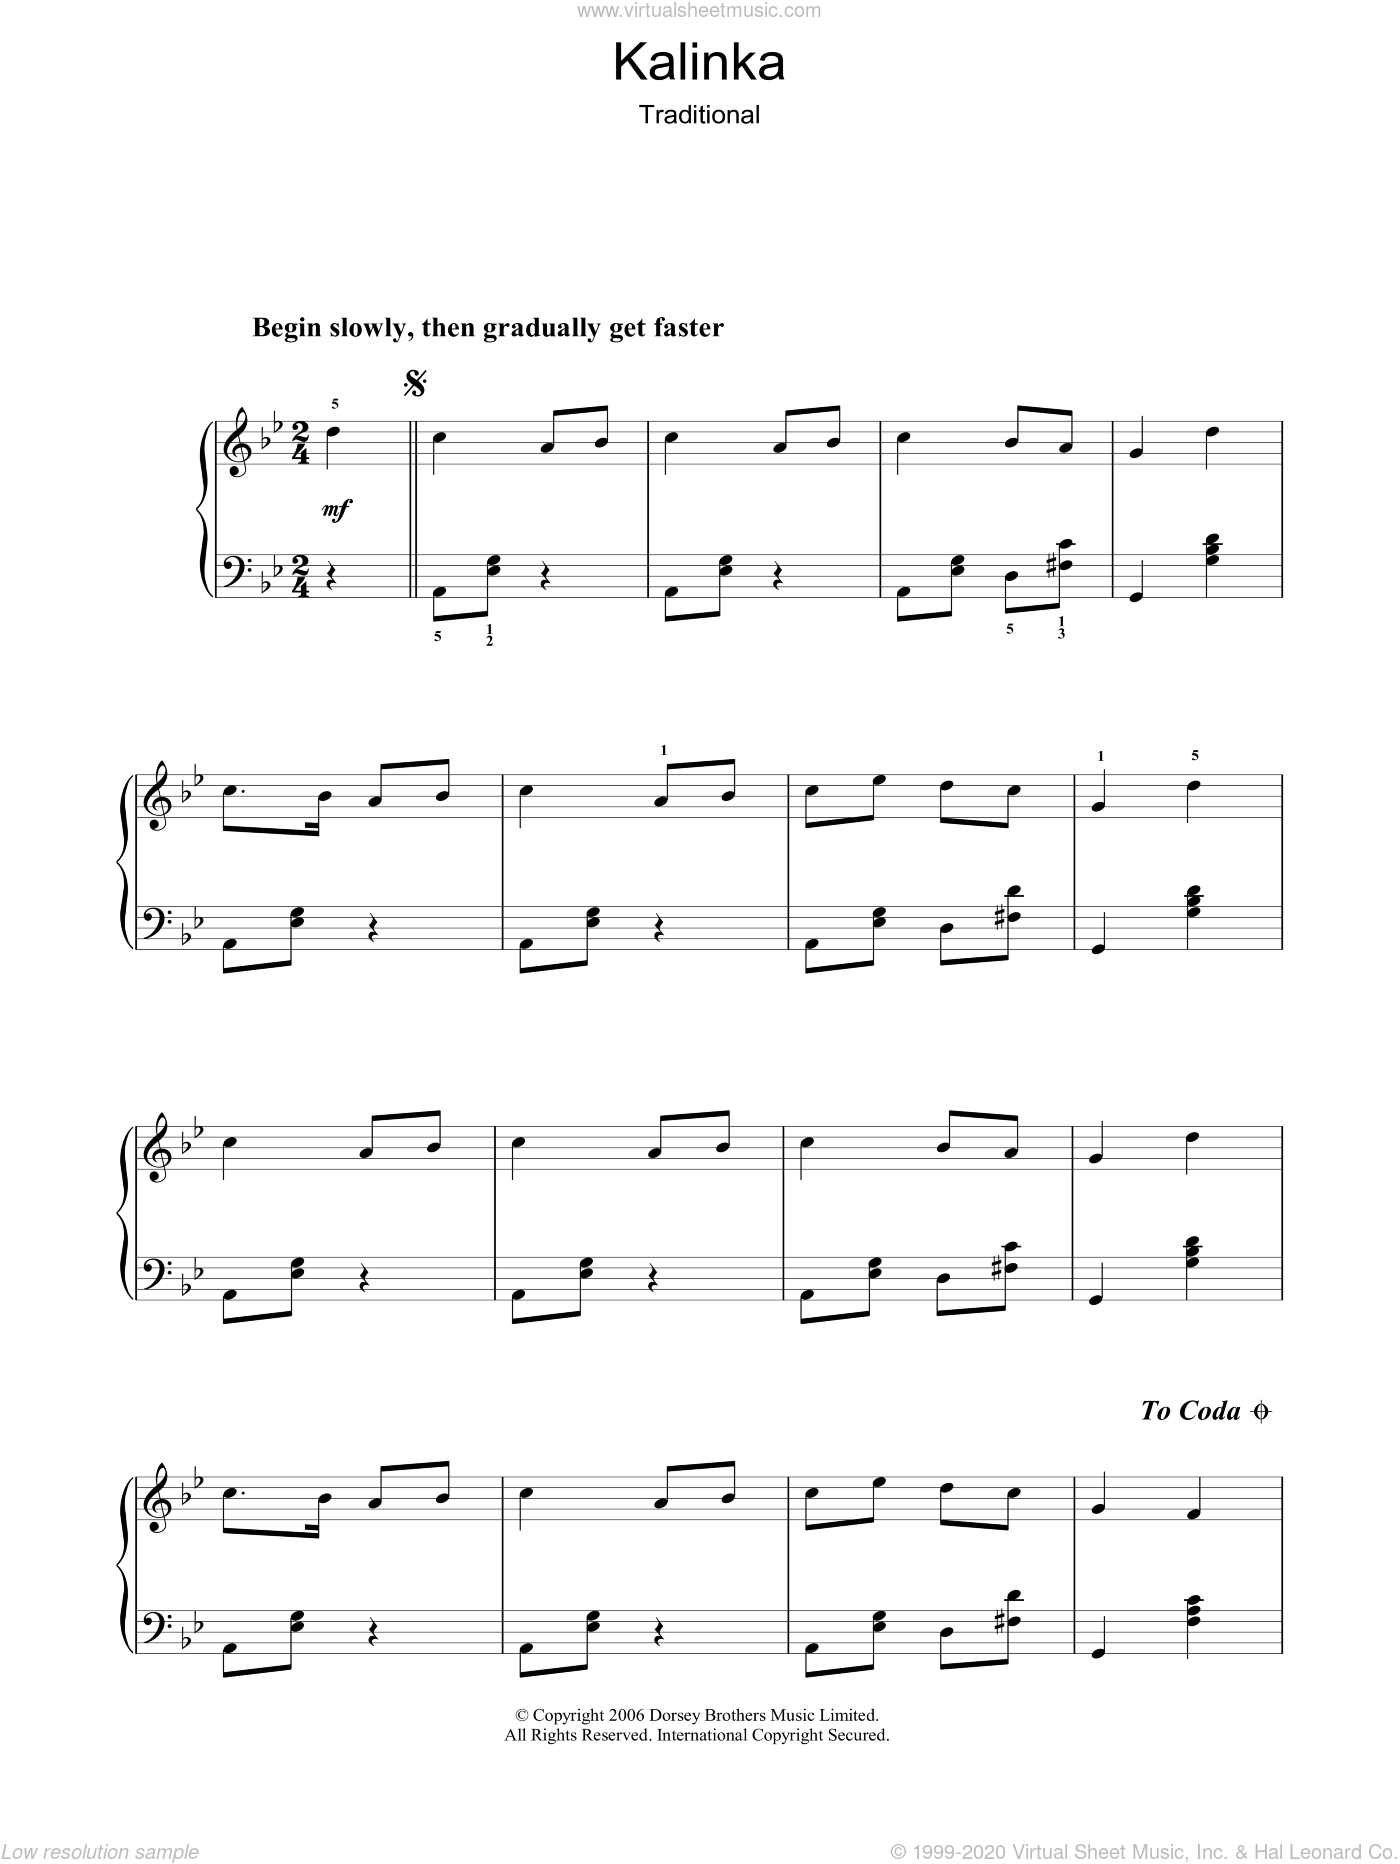 Kalinka sheet music for voice, piano or guitar. Score Image Preview.